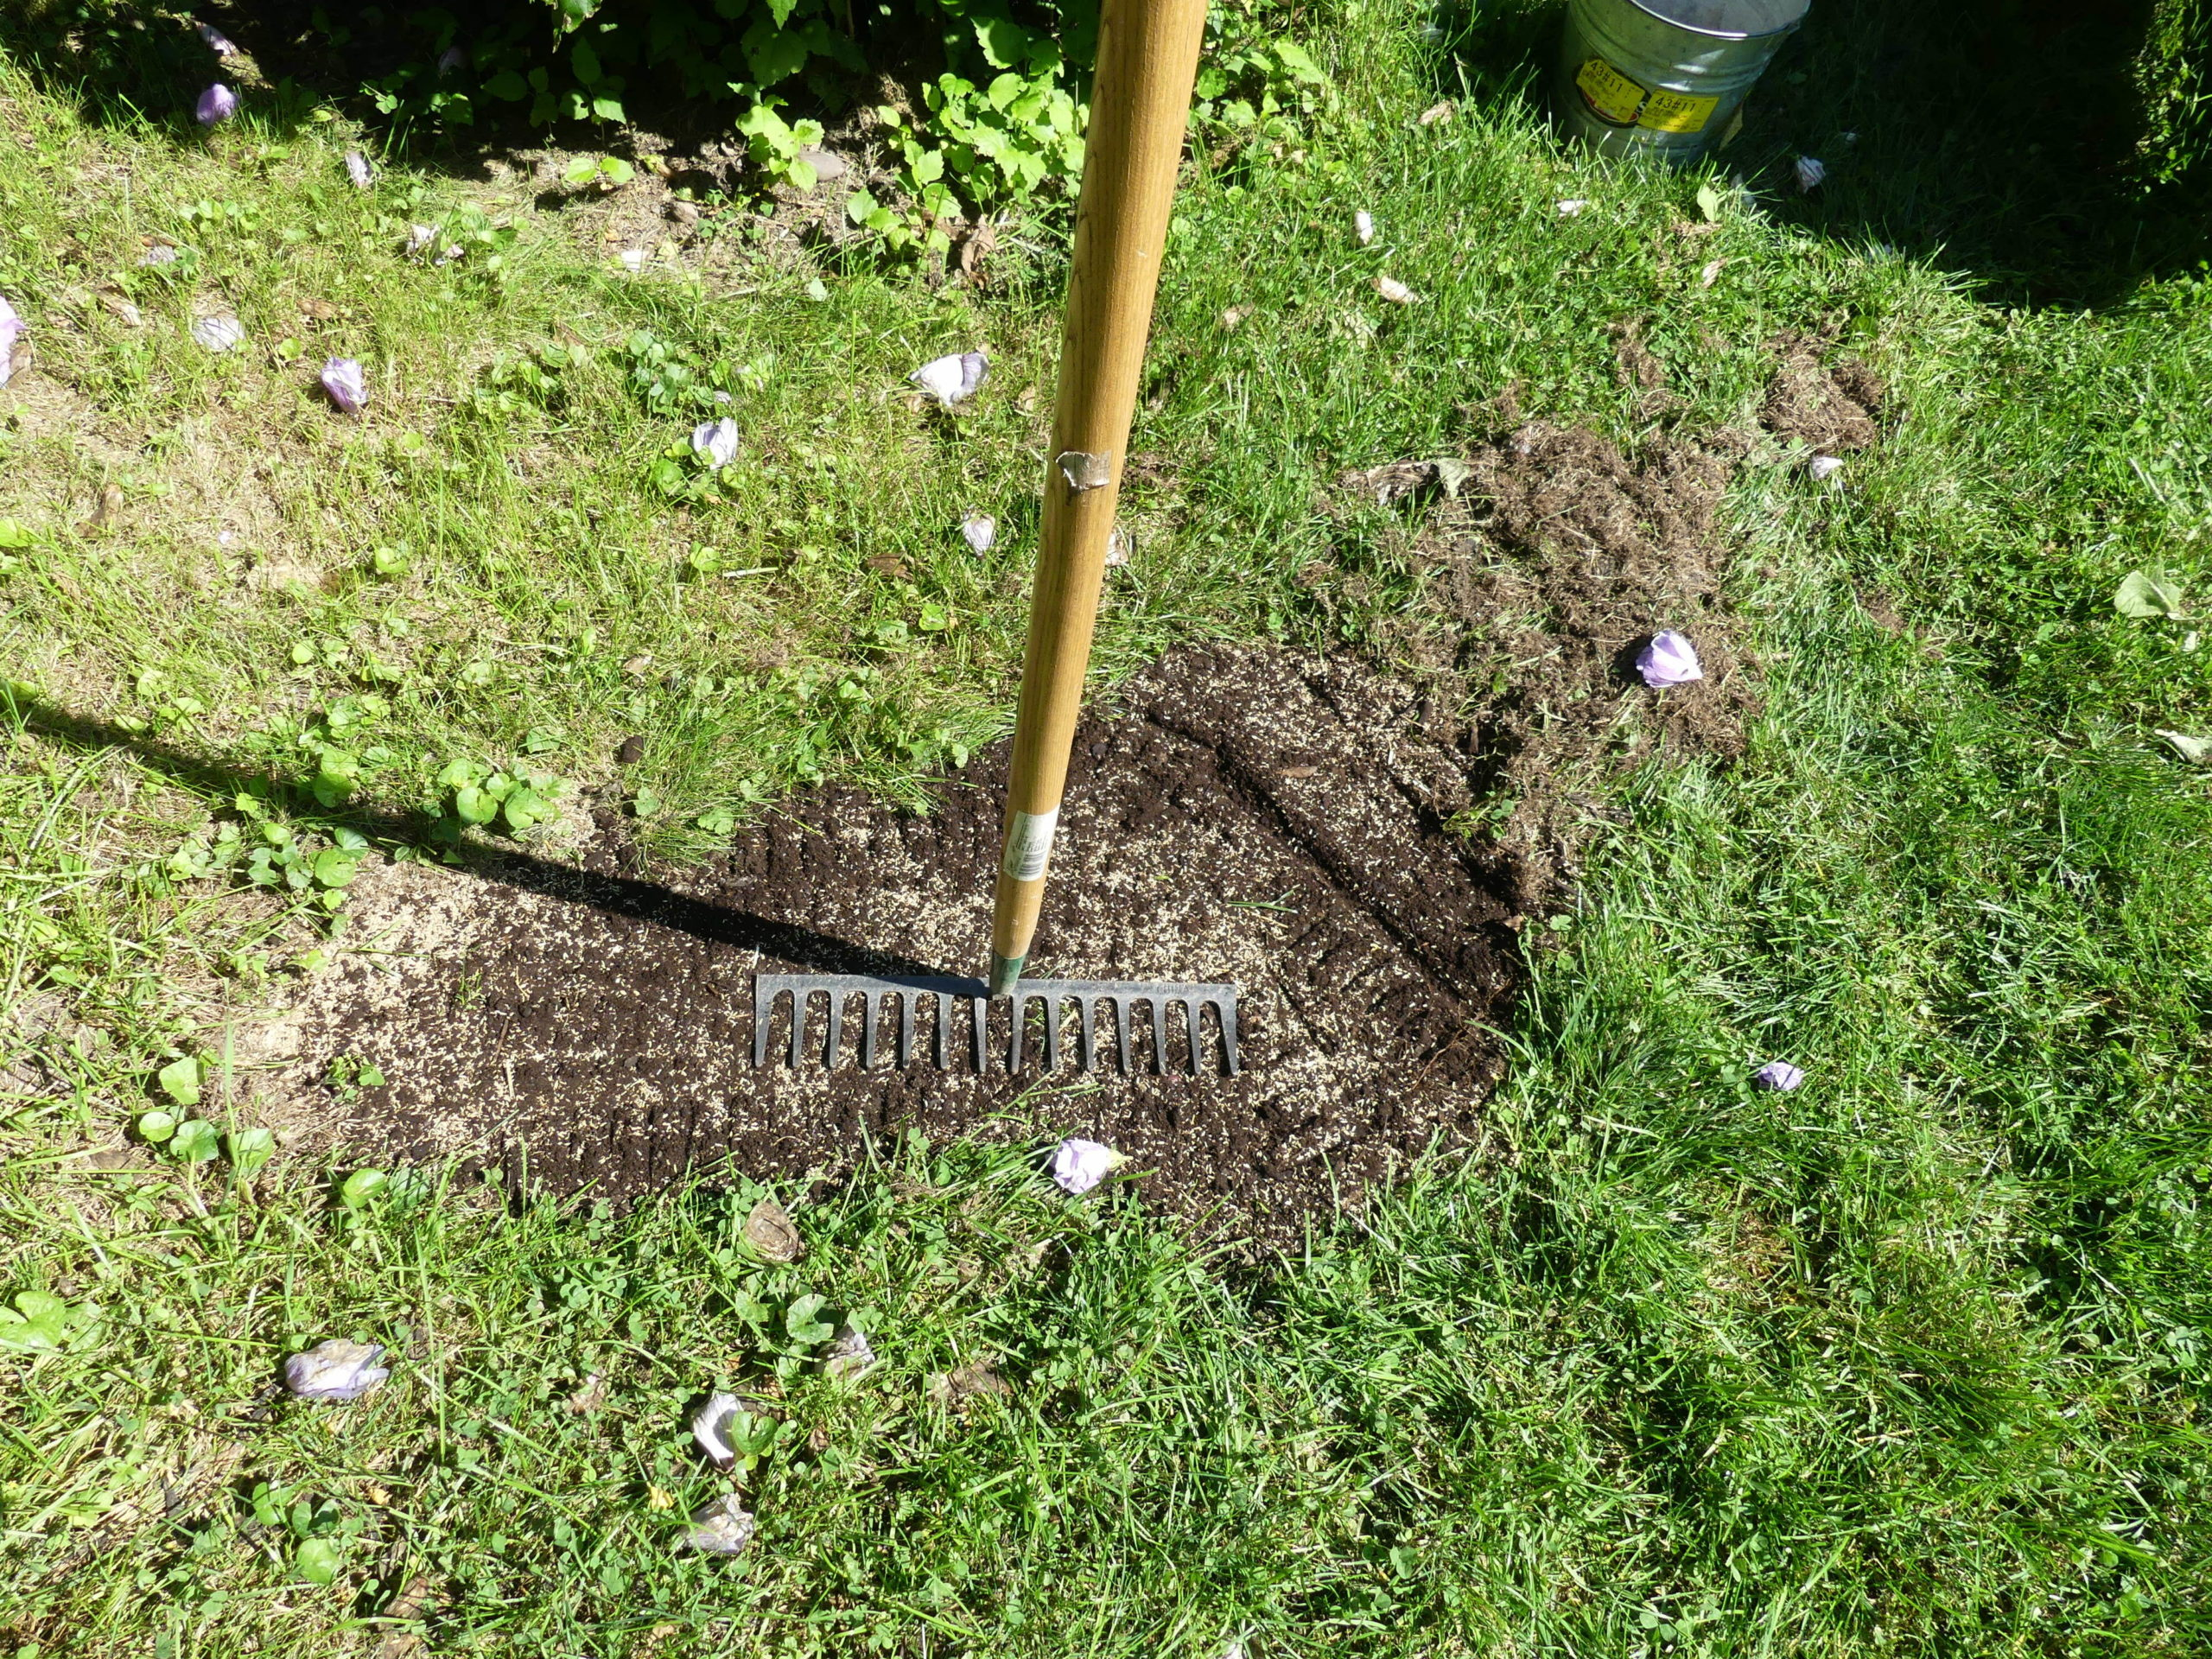 Once seeded the flat side of the tine rake is used to gently tamp the seed bed.